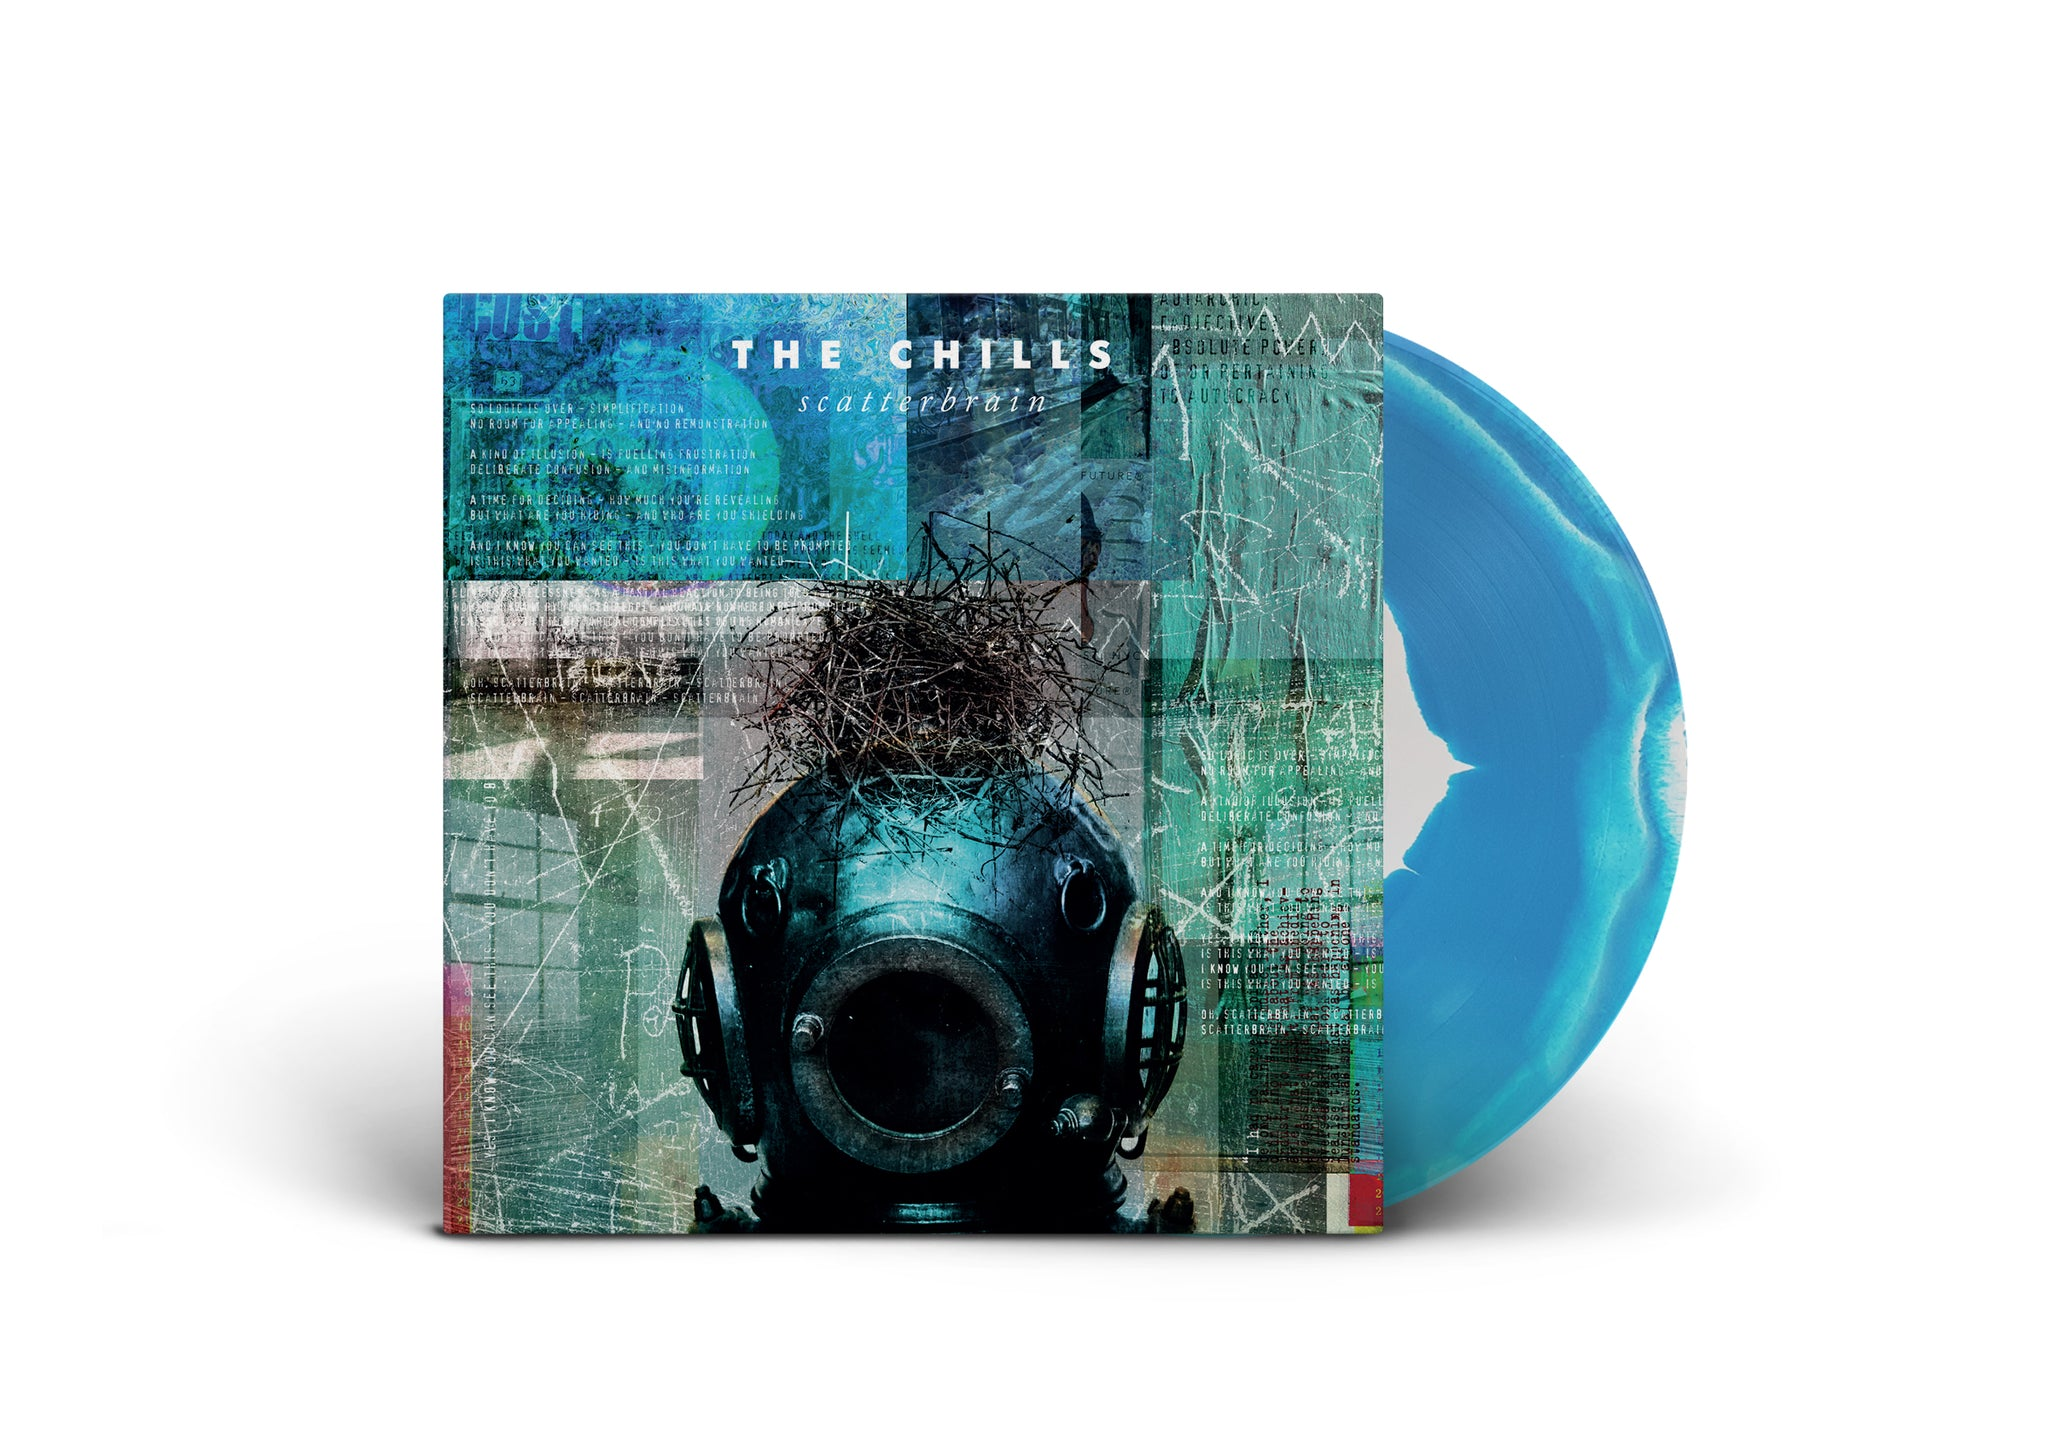 The Chills - Scatterbrain LTD Edition Deep Sea Marble LP